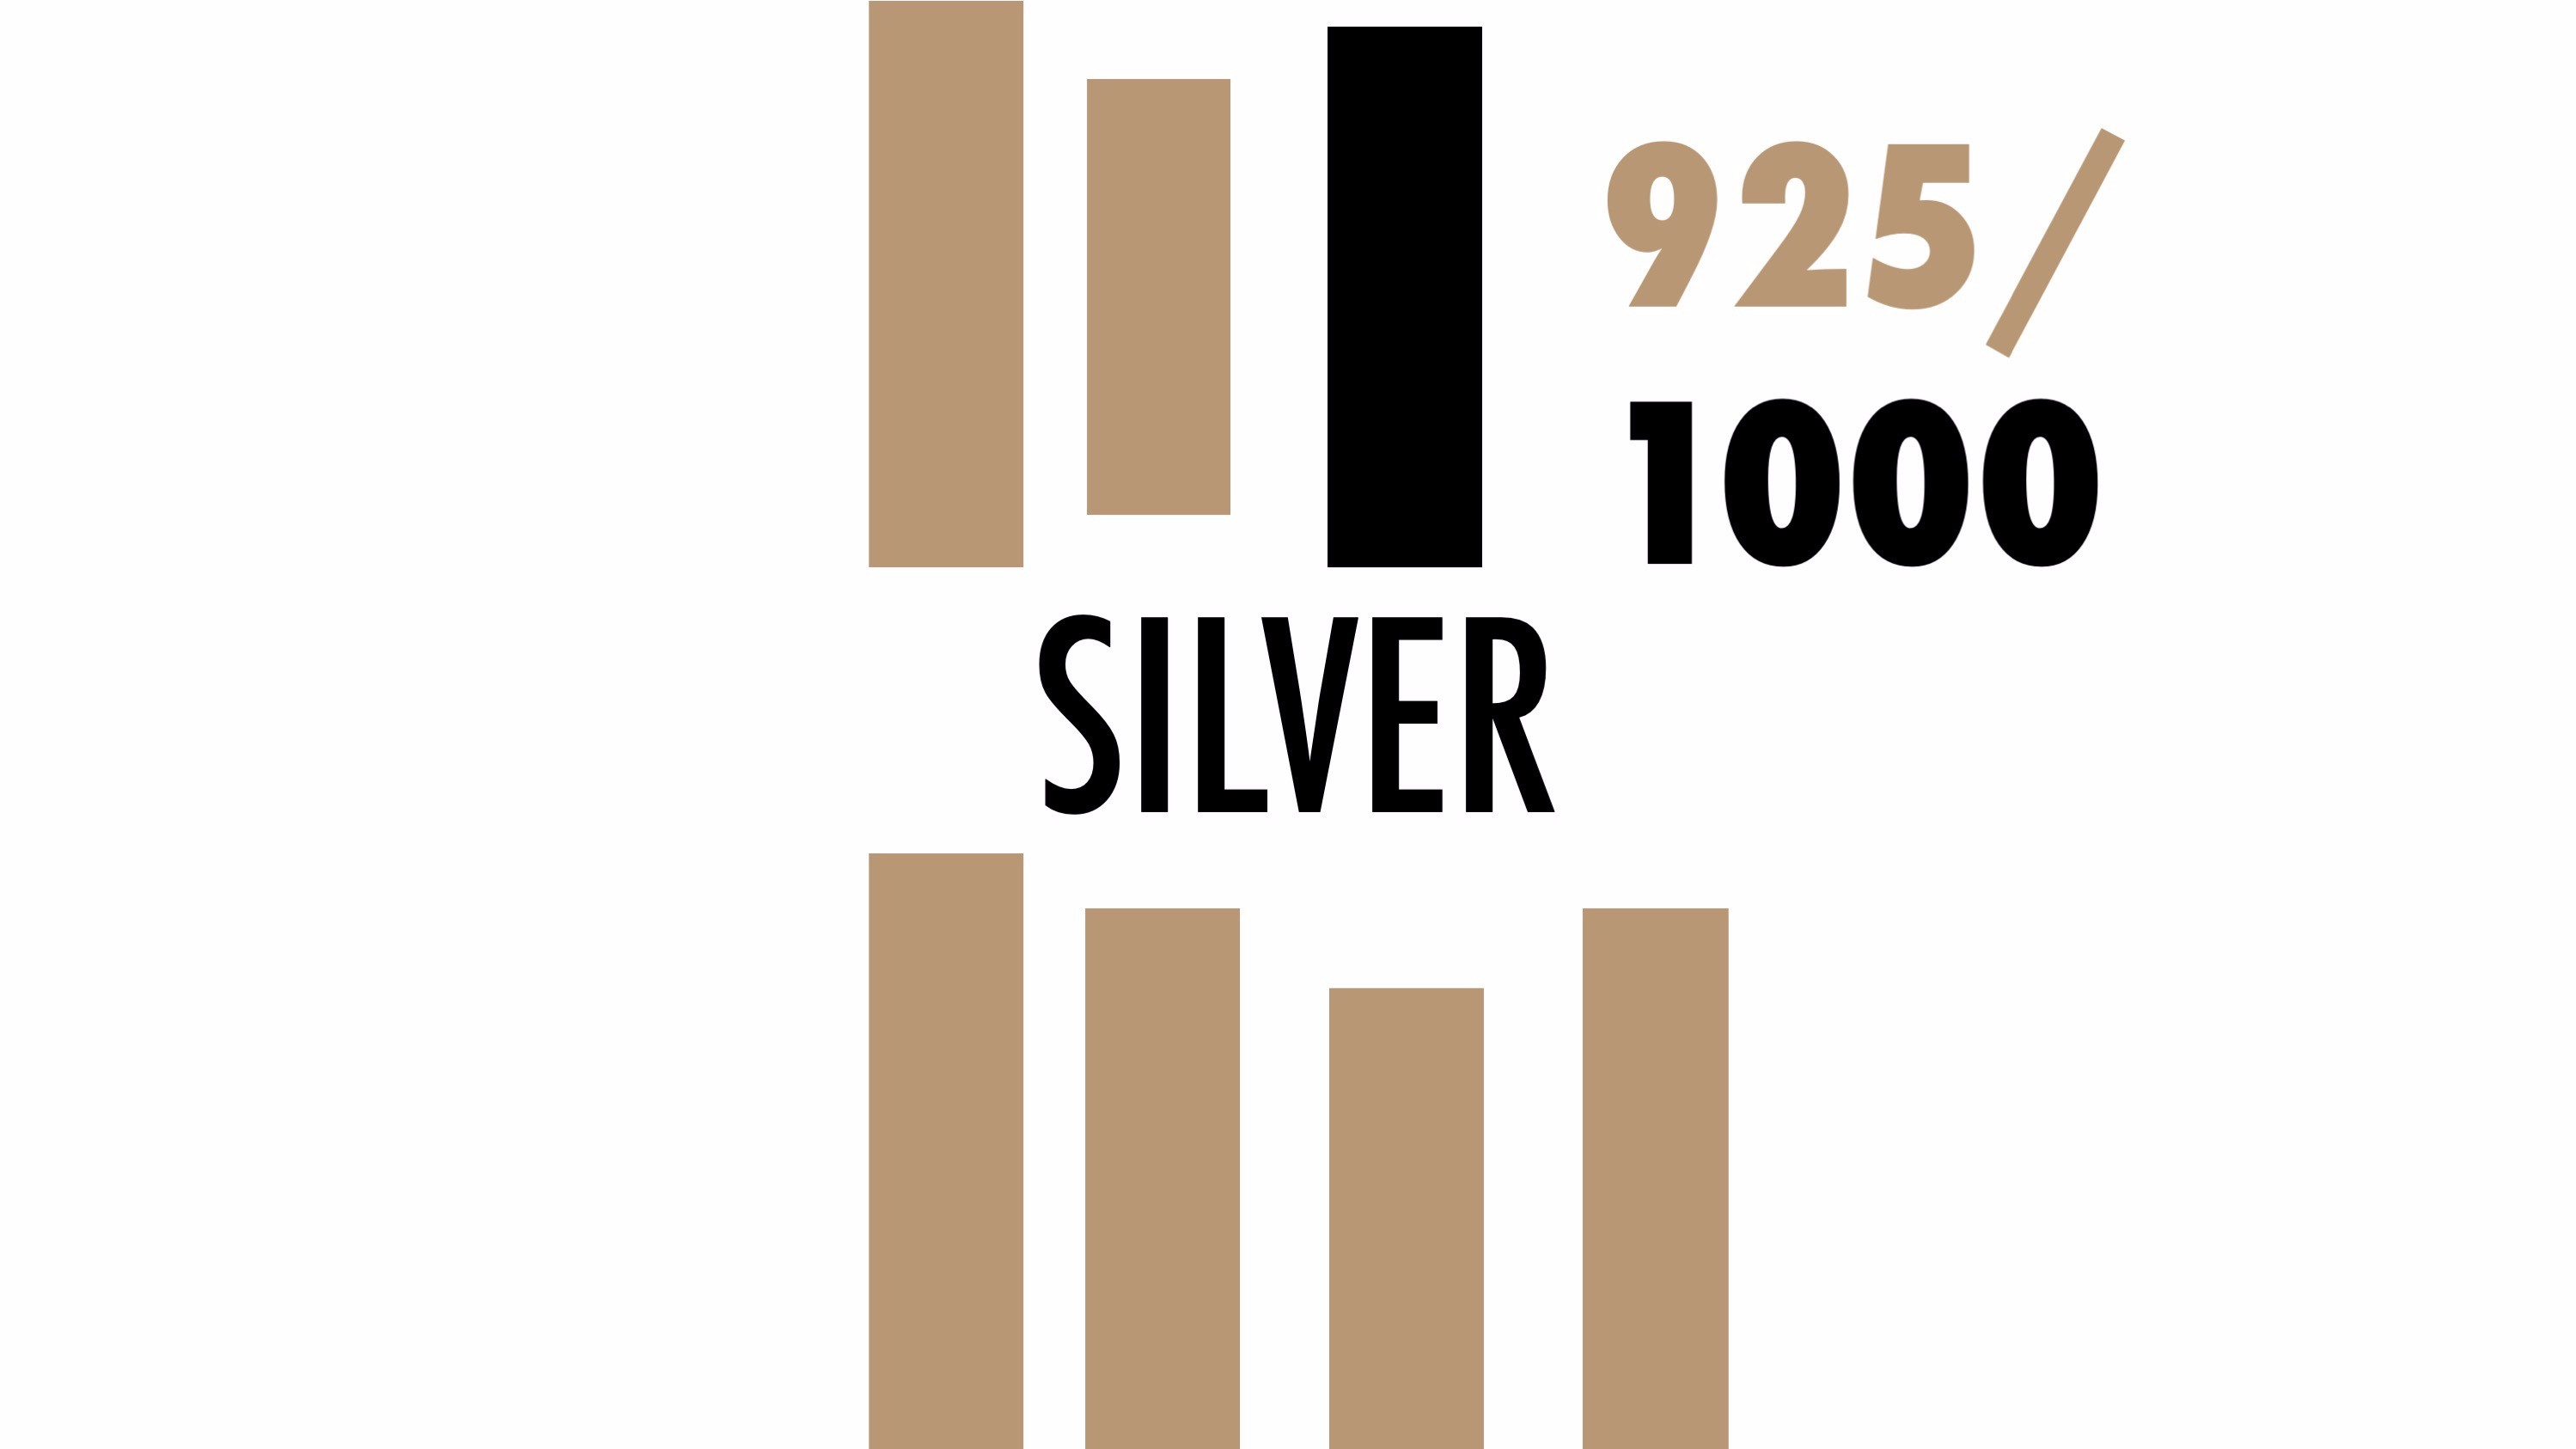 Silver-category-hover-icon